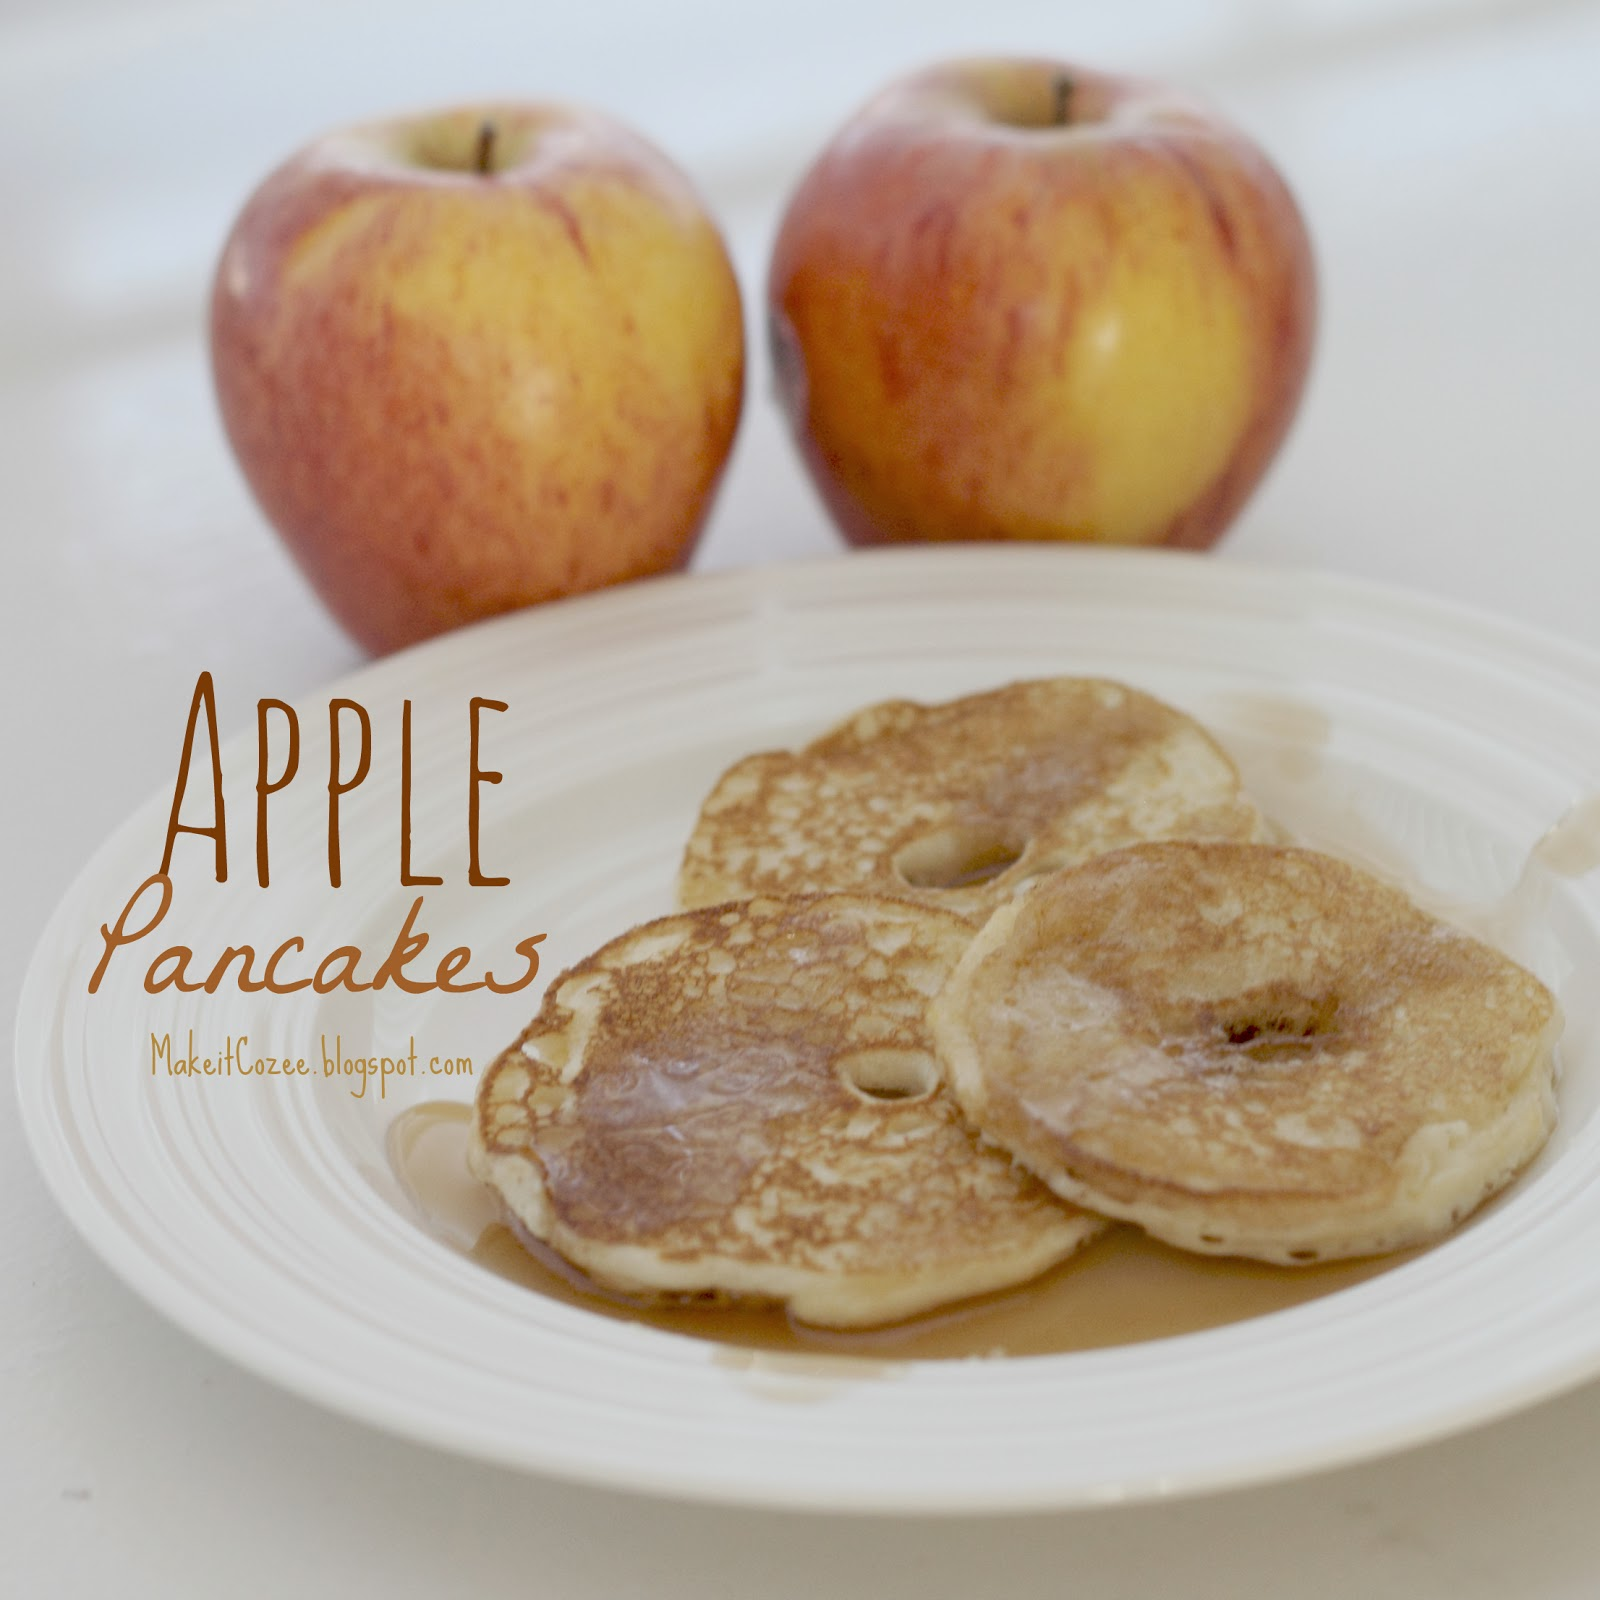 Make it Cozee: Recipe: Apple Pancakes